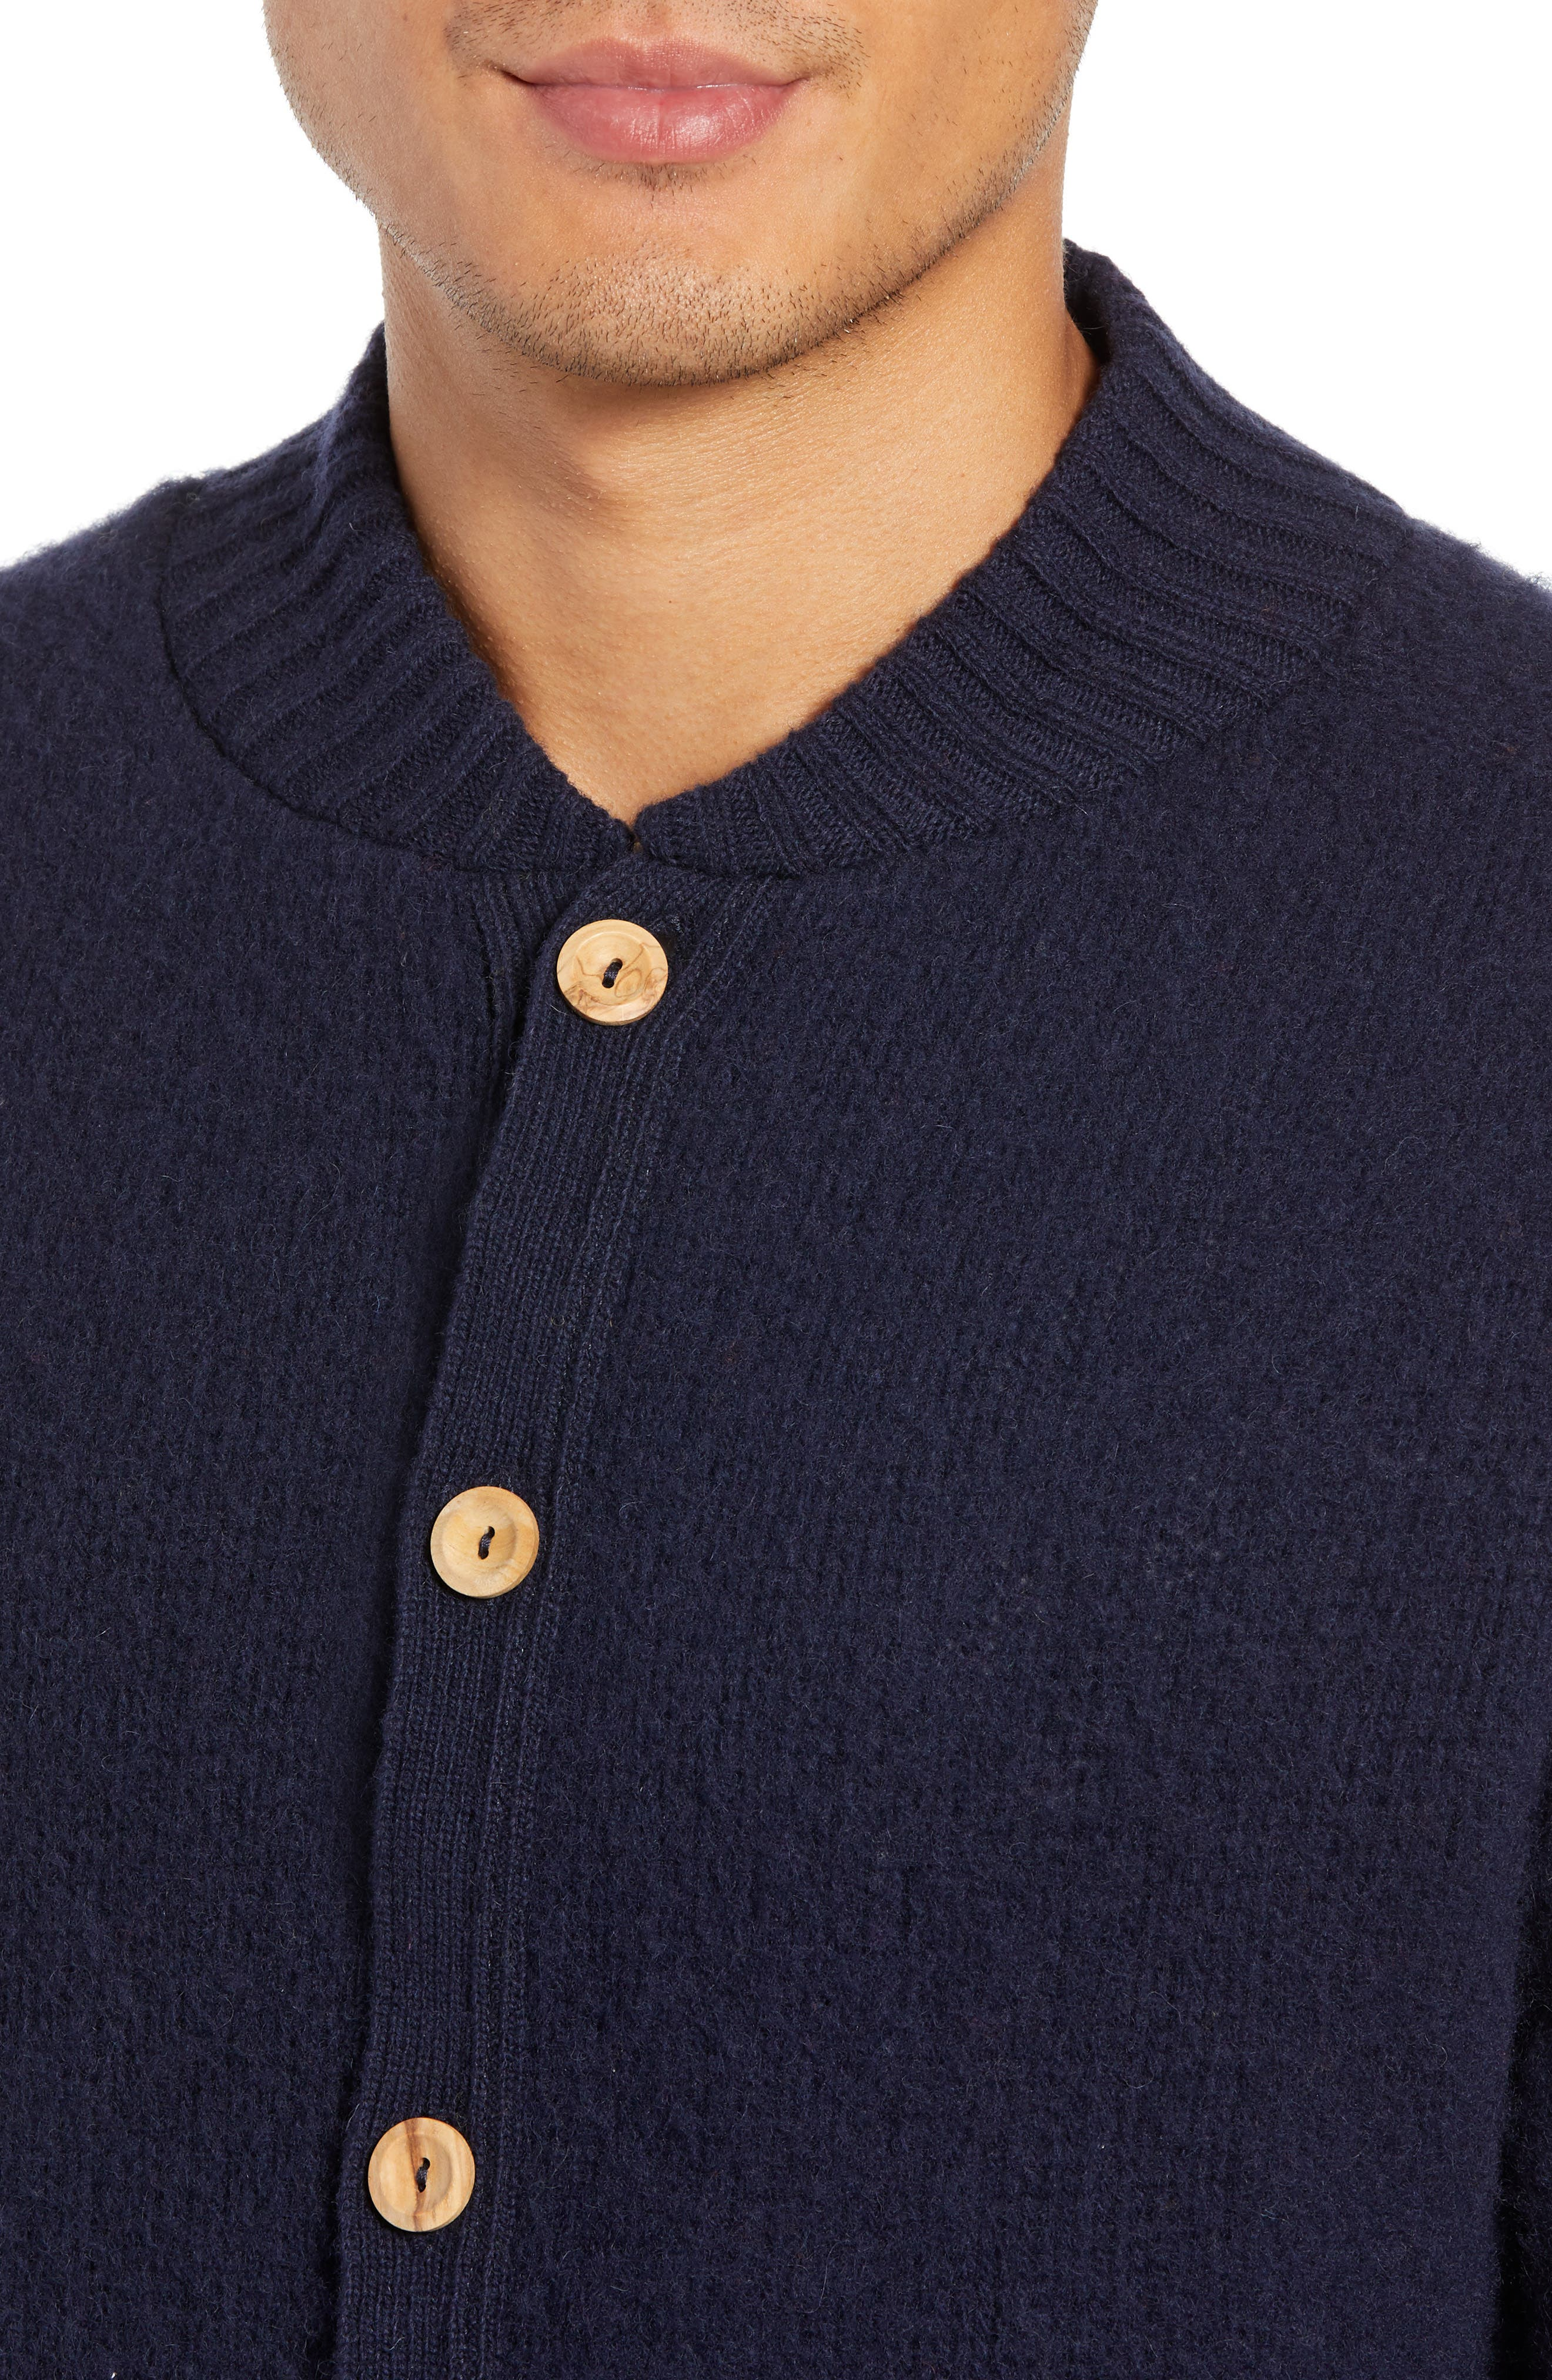 Baseball Cardy Wool Sweater,                             Alternate thumbnail 4, color,                             NAVY